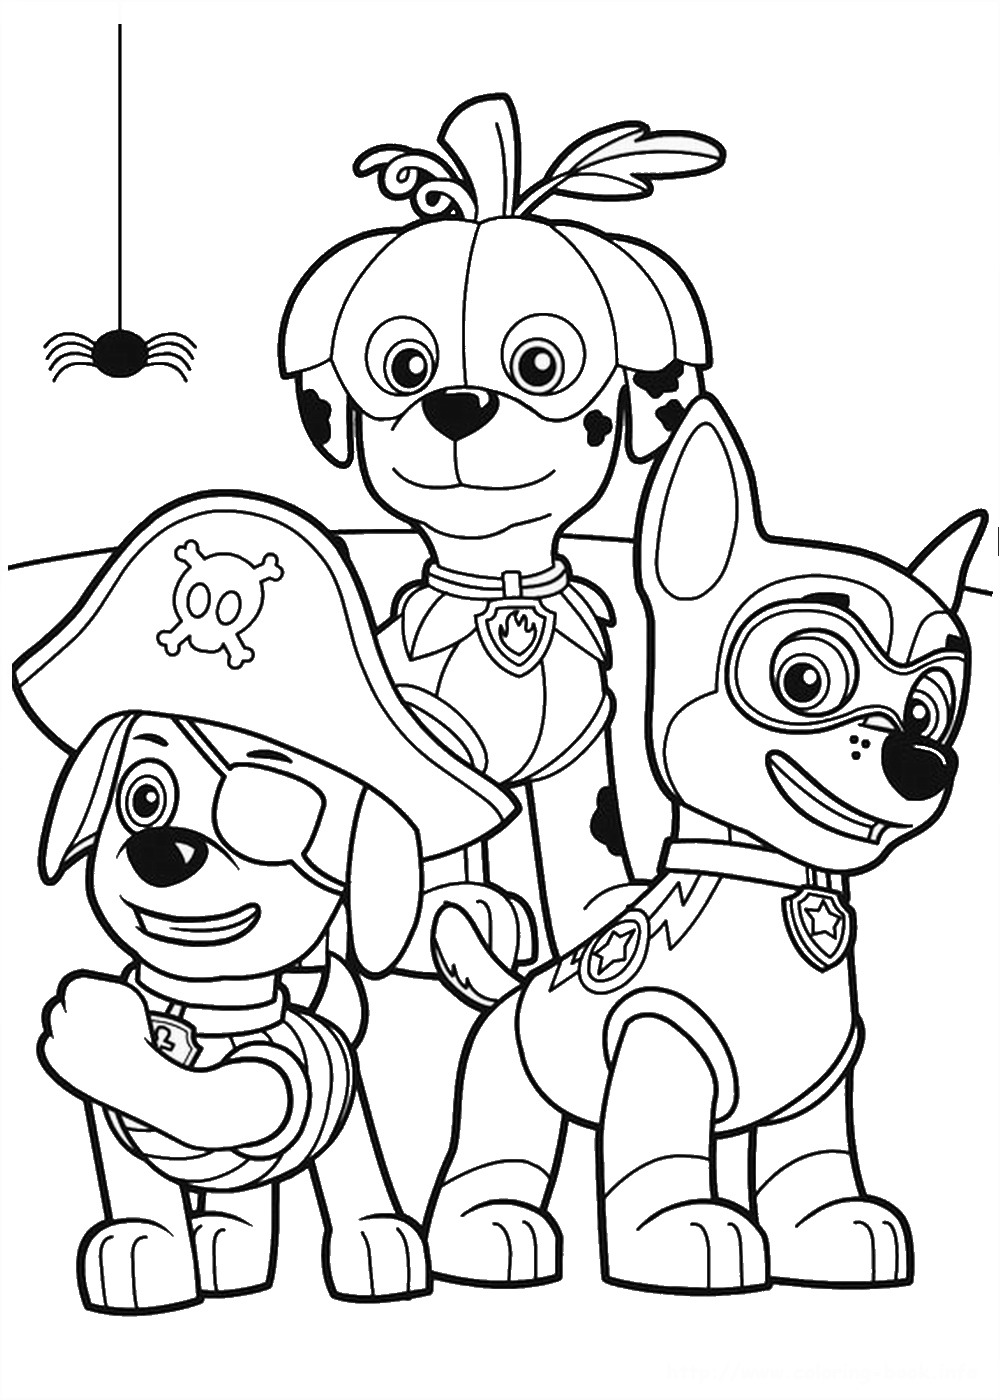 paw patrol free coloring pages printable free paw patrol coloring pages happiness is homemade coloring patrol paw free pages printable